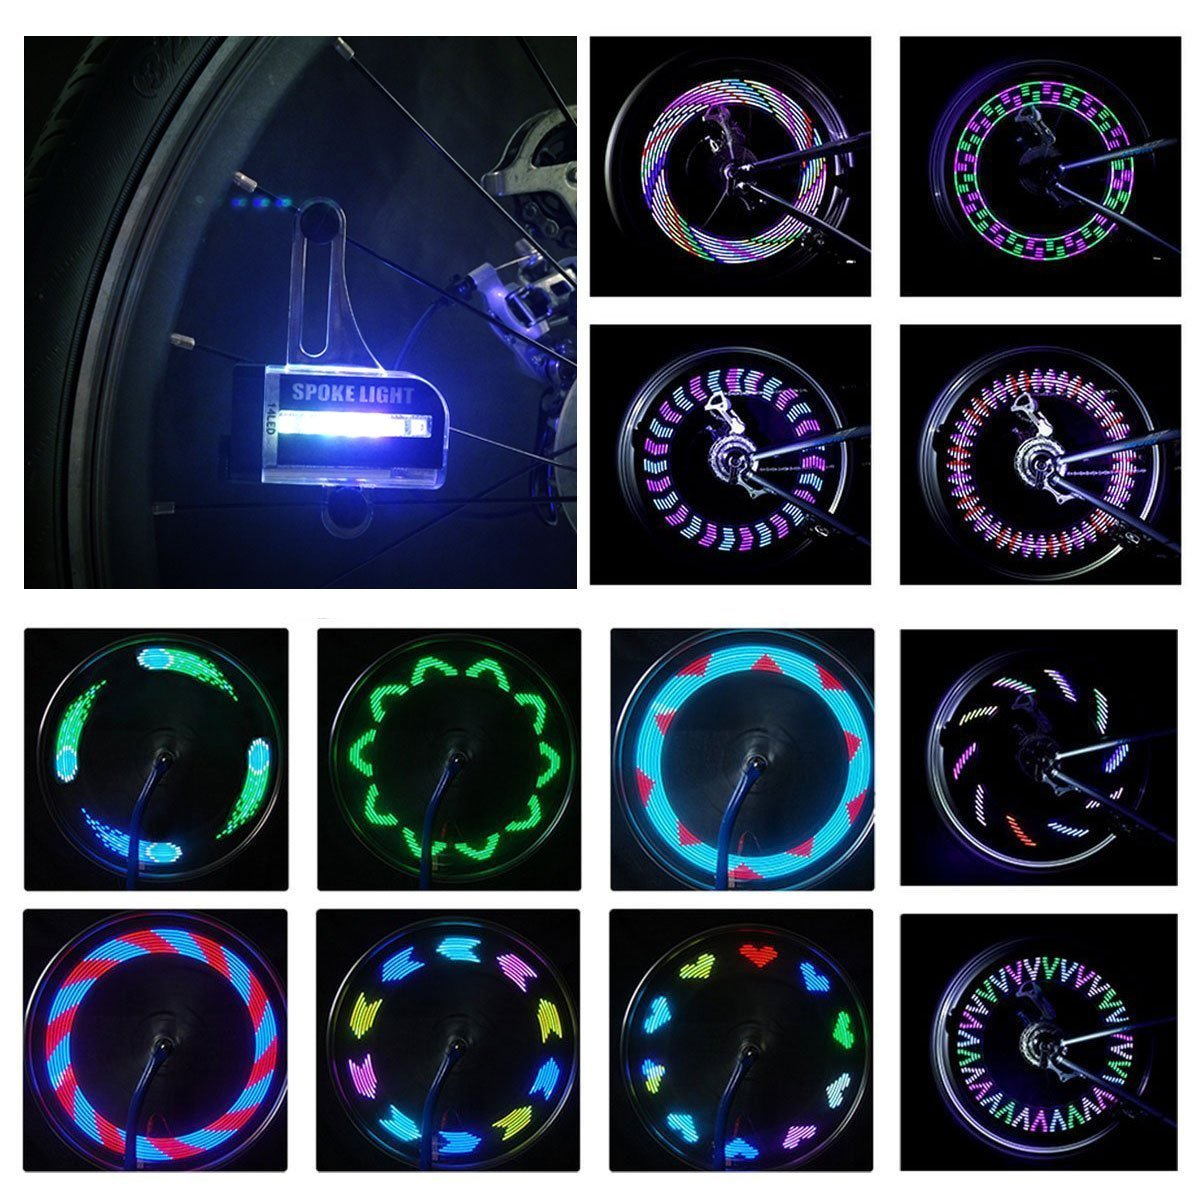 Amazon.com: LED Bike Wheel Light Waterproof - DAWAY A02 Bicycle Tire ...